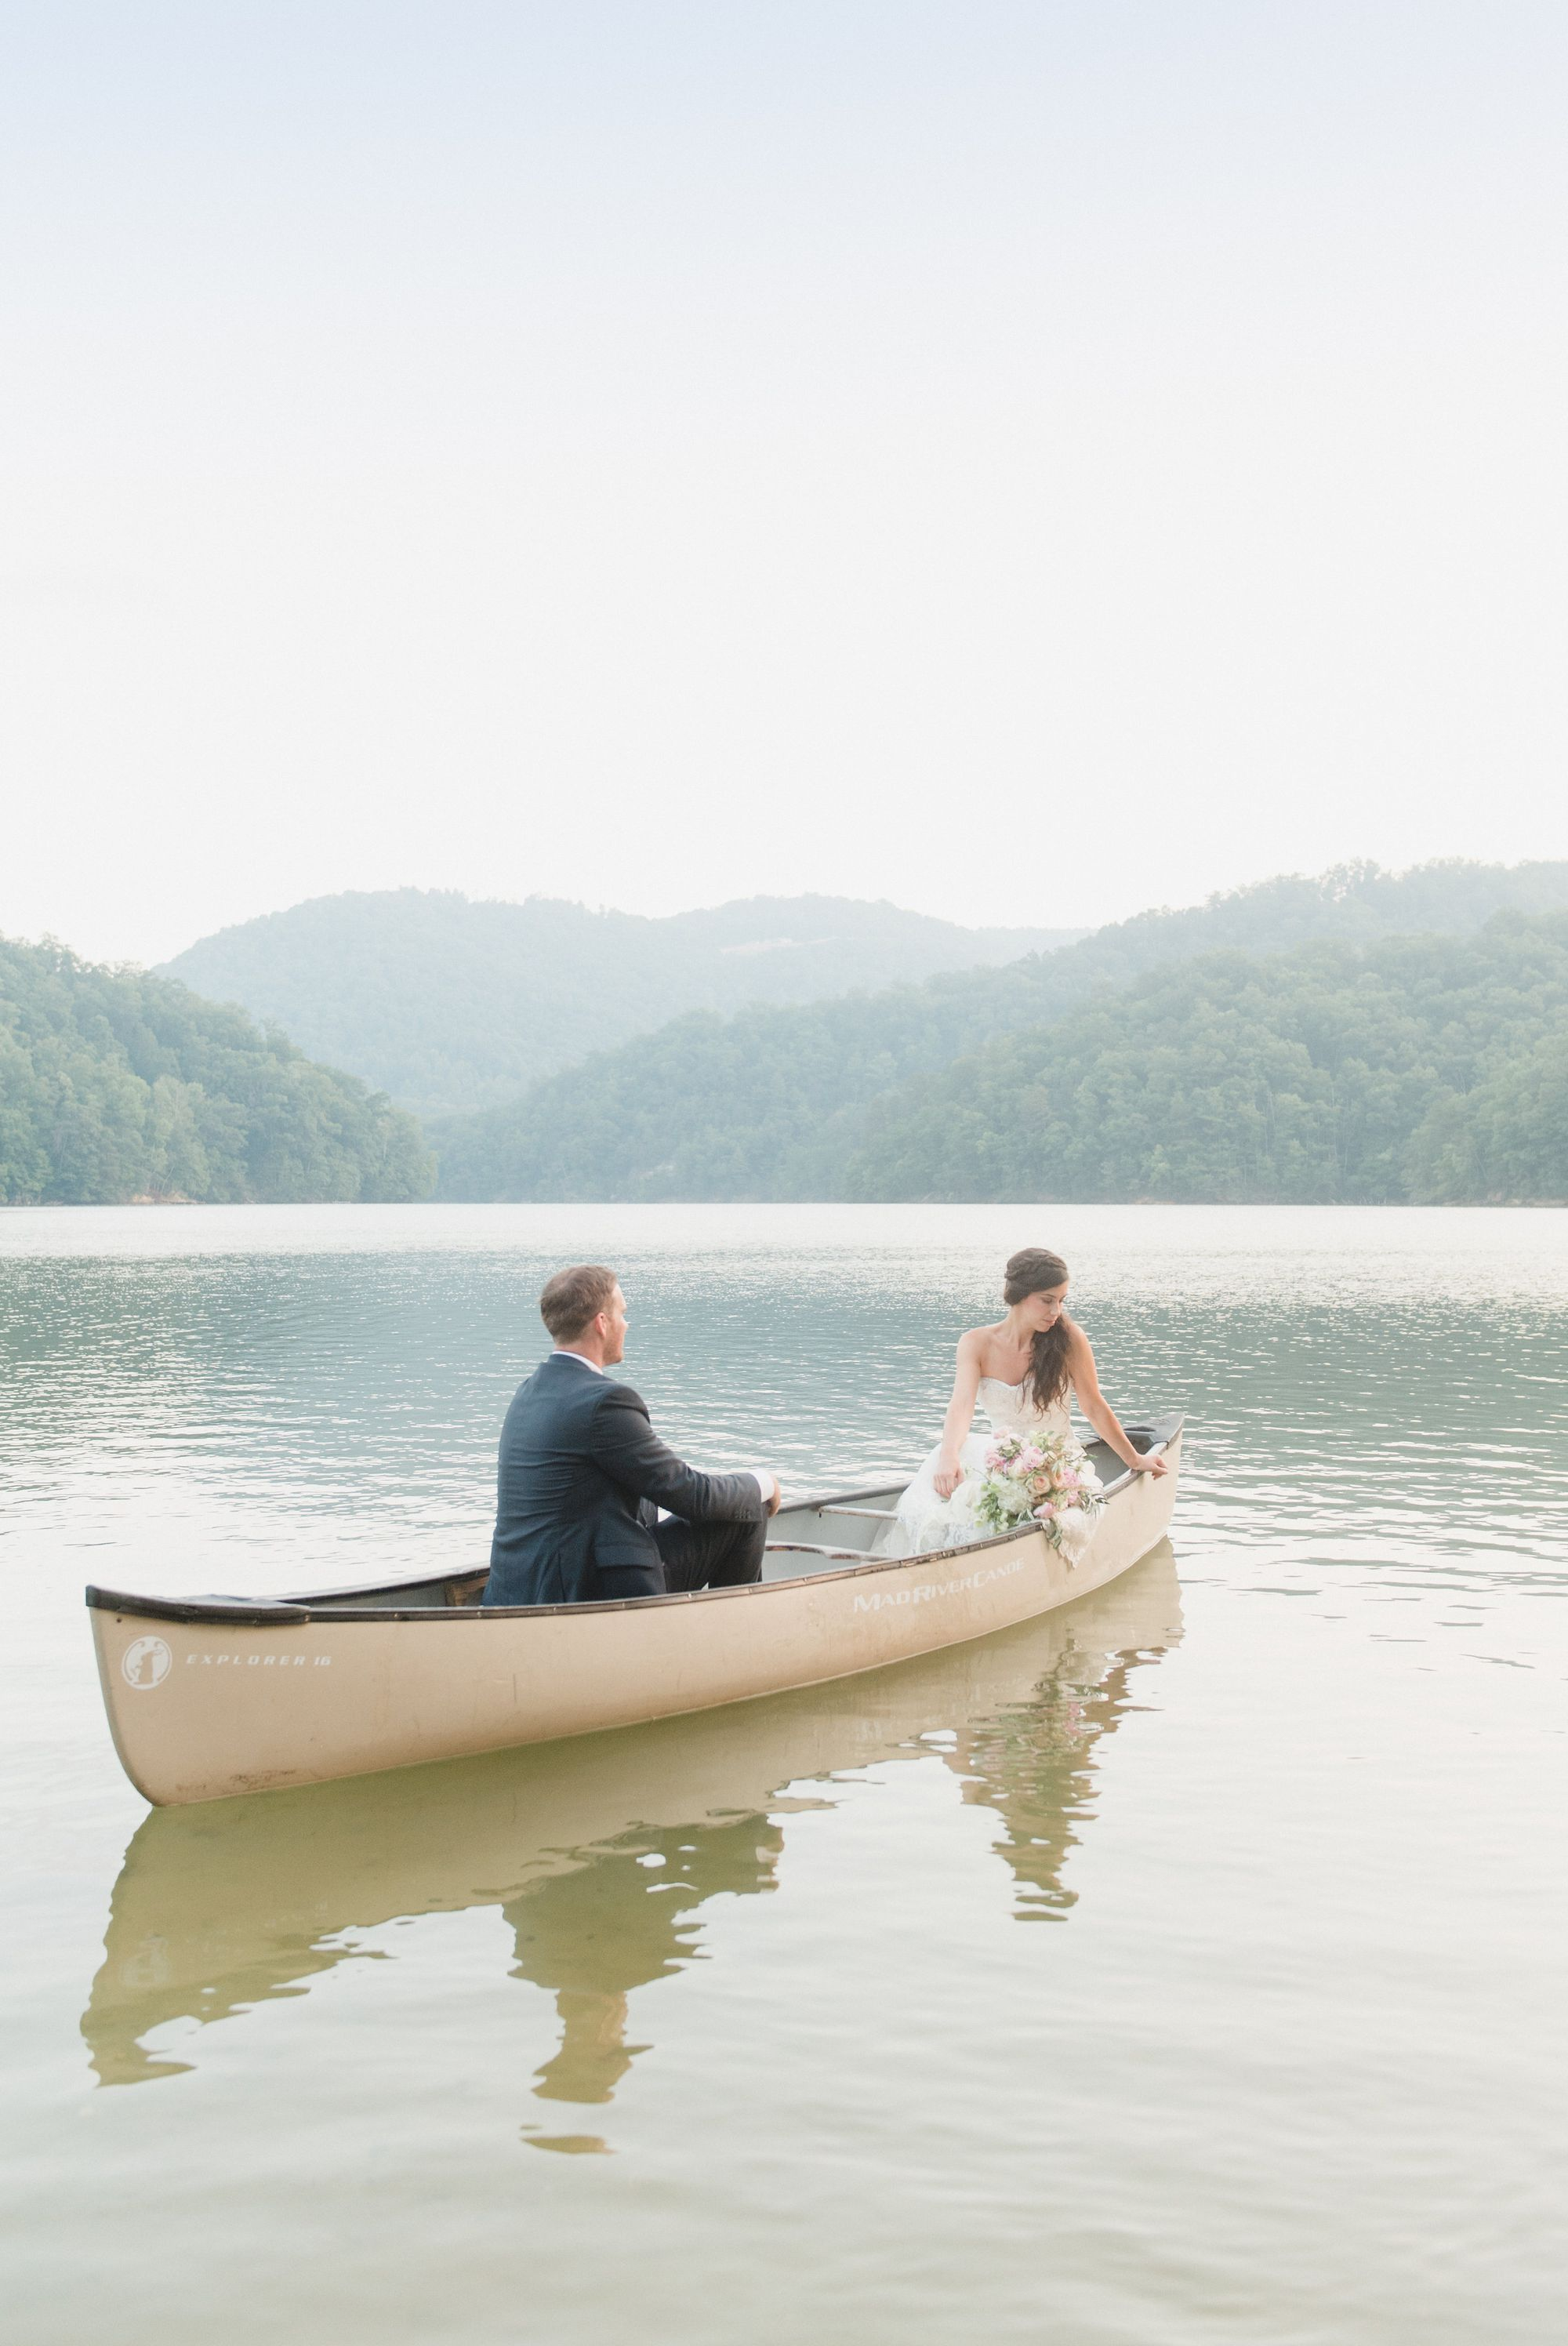 morning-after-wedding-session-in-canoe 9